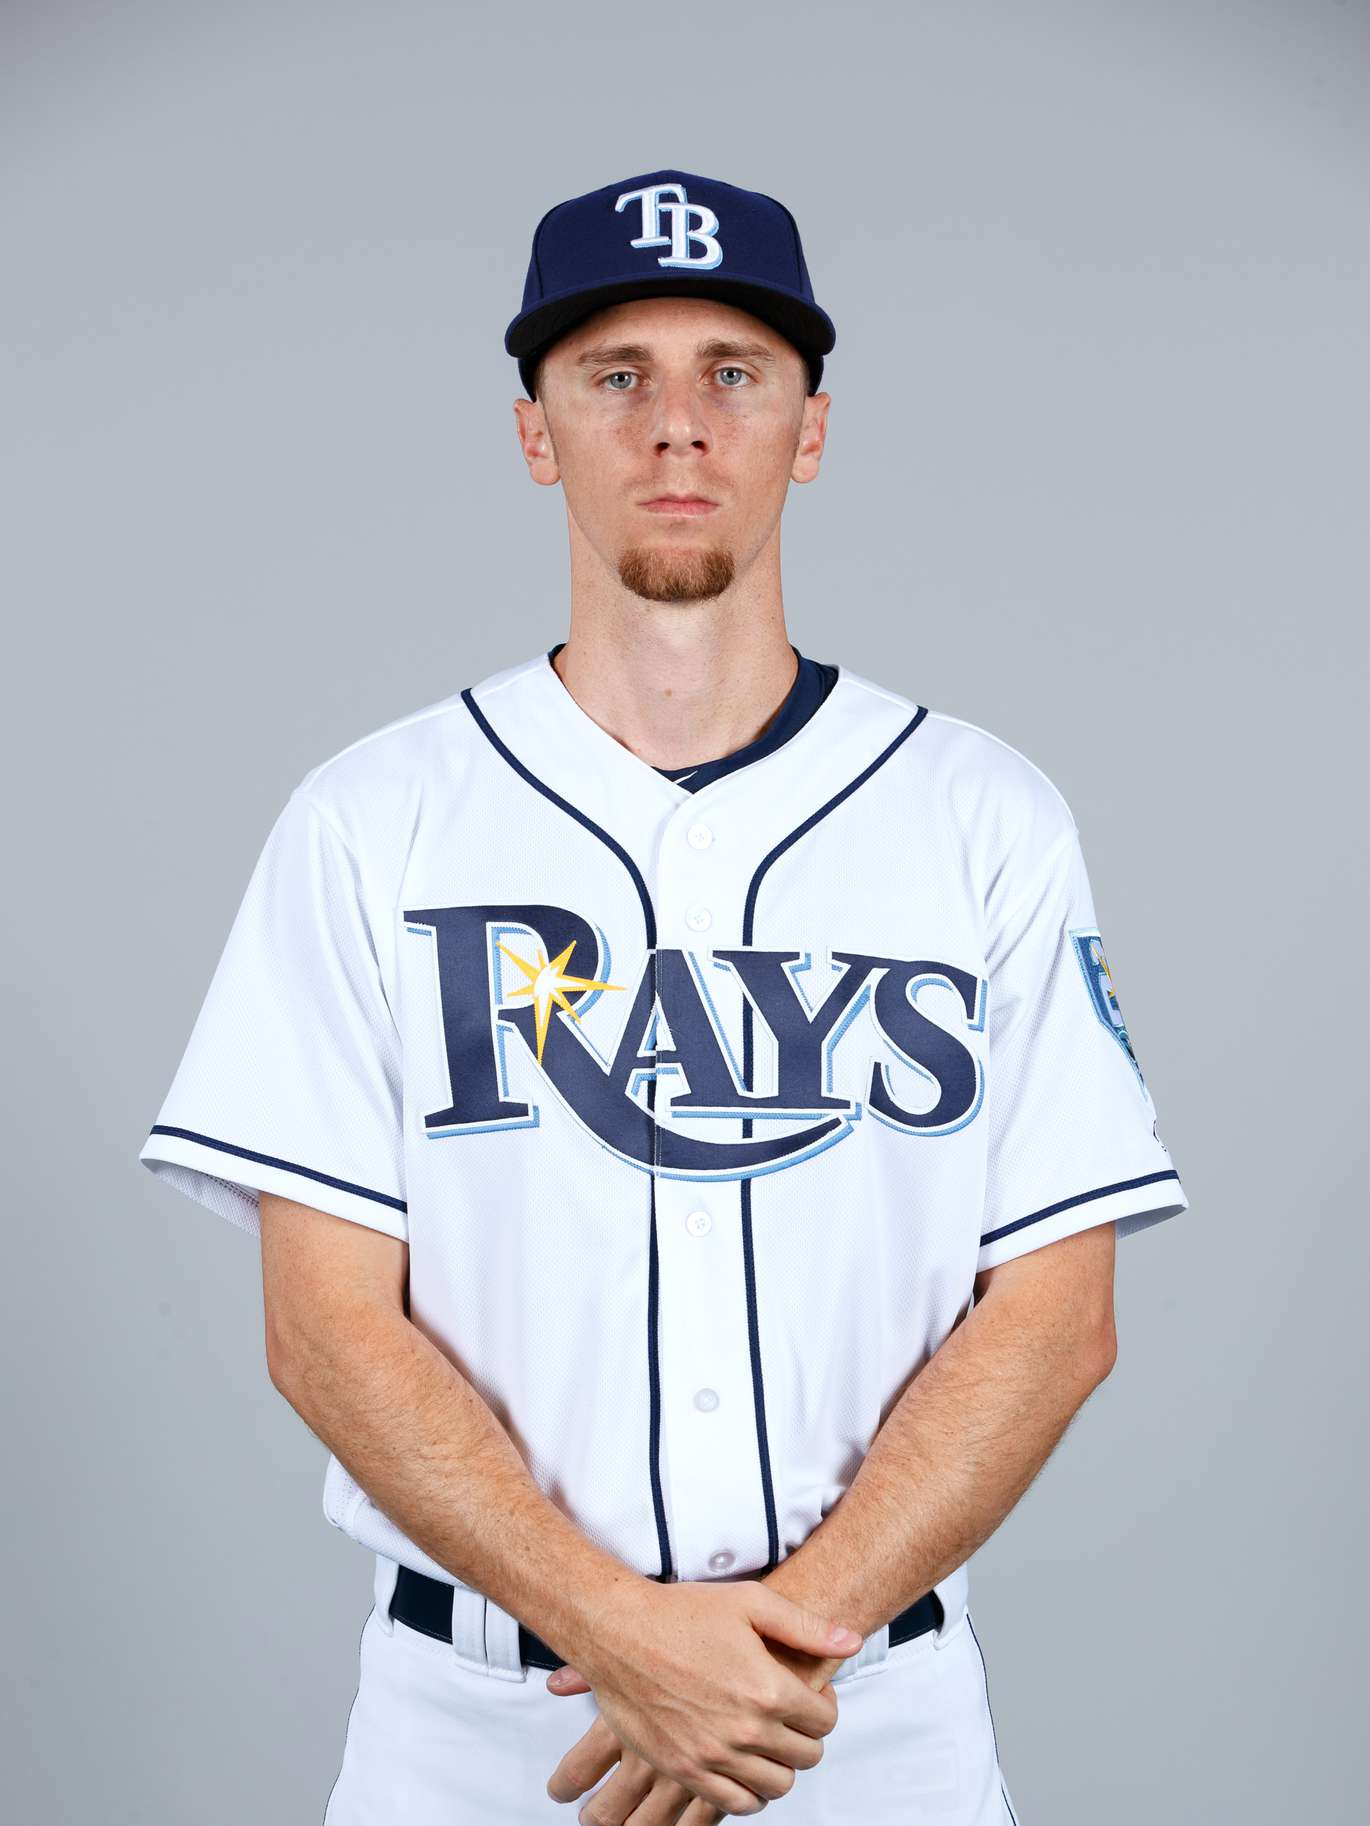 4. Matt Duffy, 3b, No. 5: Not only is he expected to make up for missing all of last season, but is also stepping in for traded franchise icon Evan Longoria.